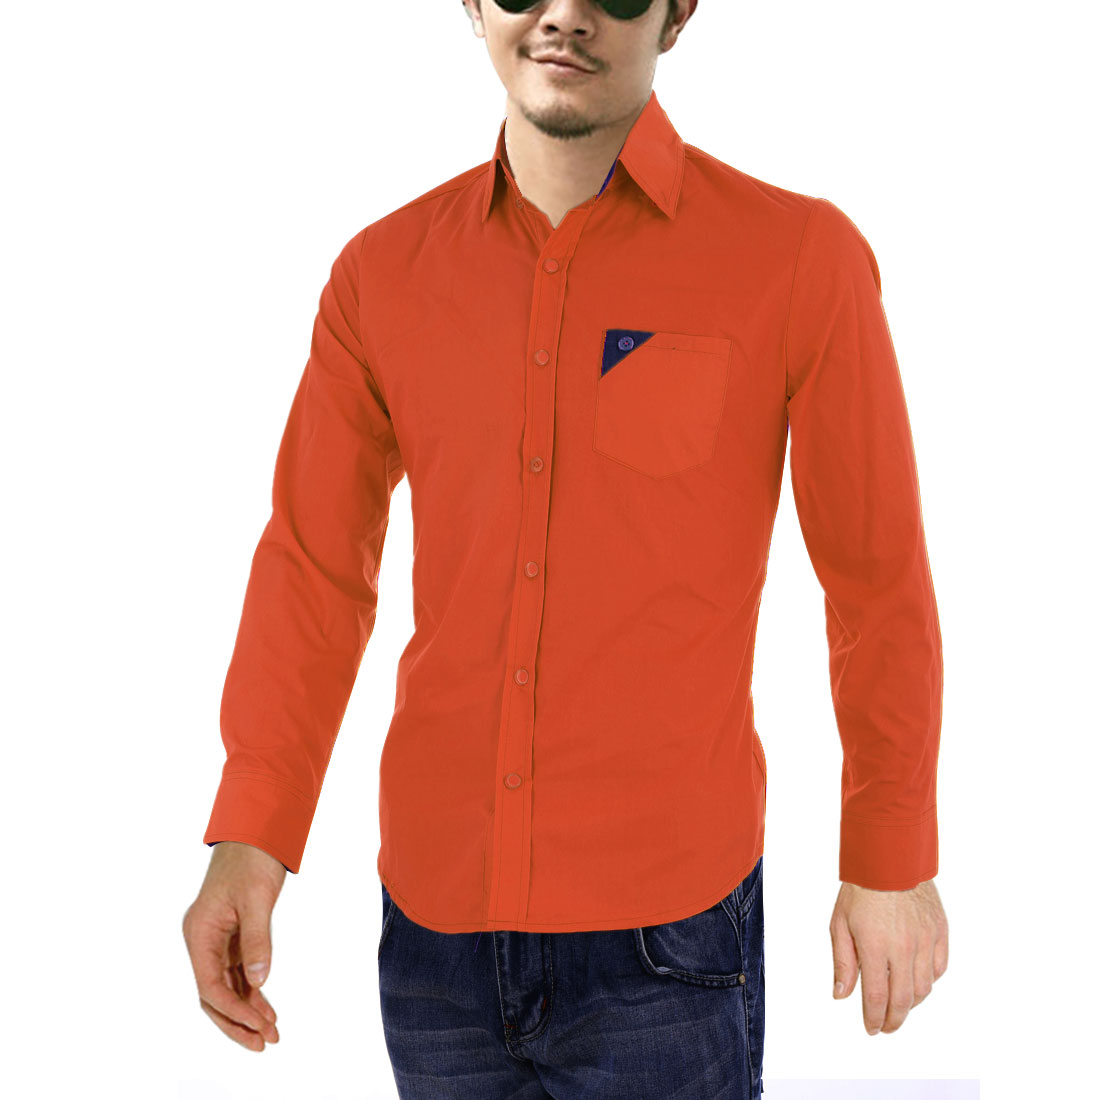 Men Point Collar Long Sleeve Splice Pocket Shirt Orange Red M